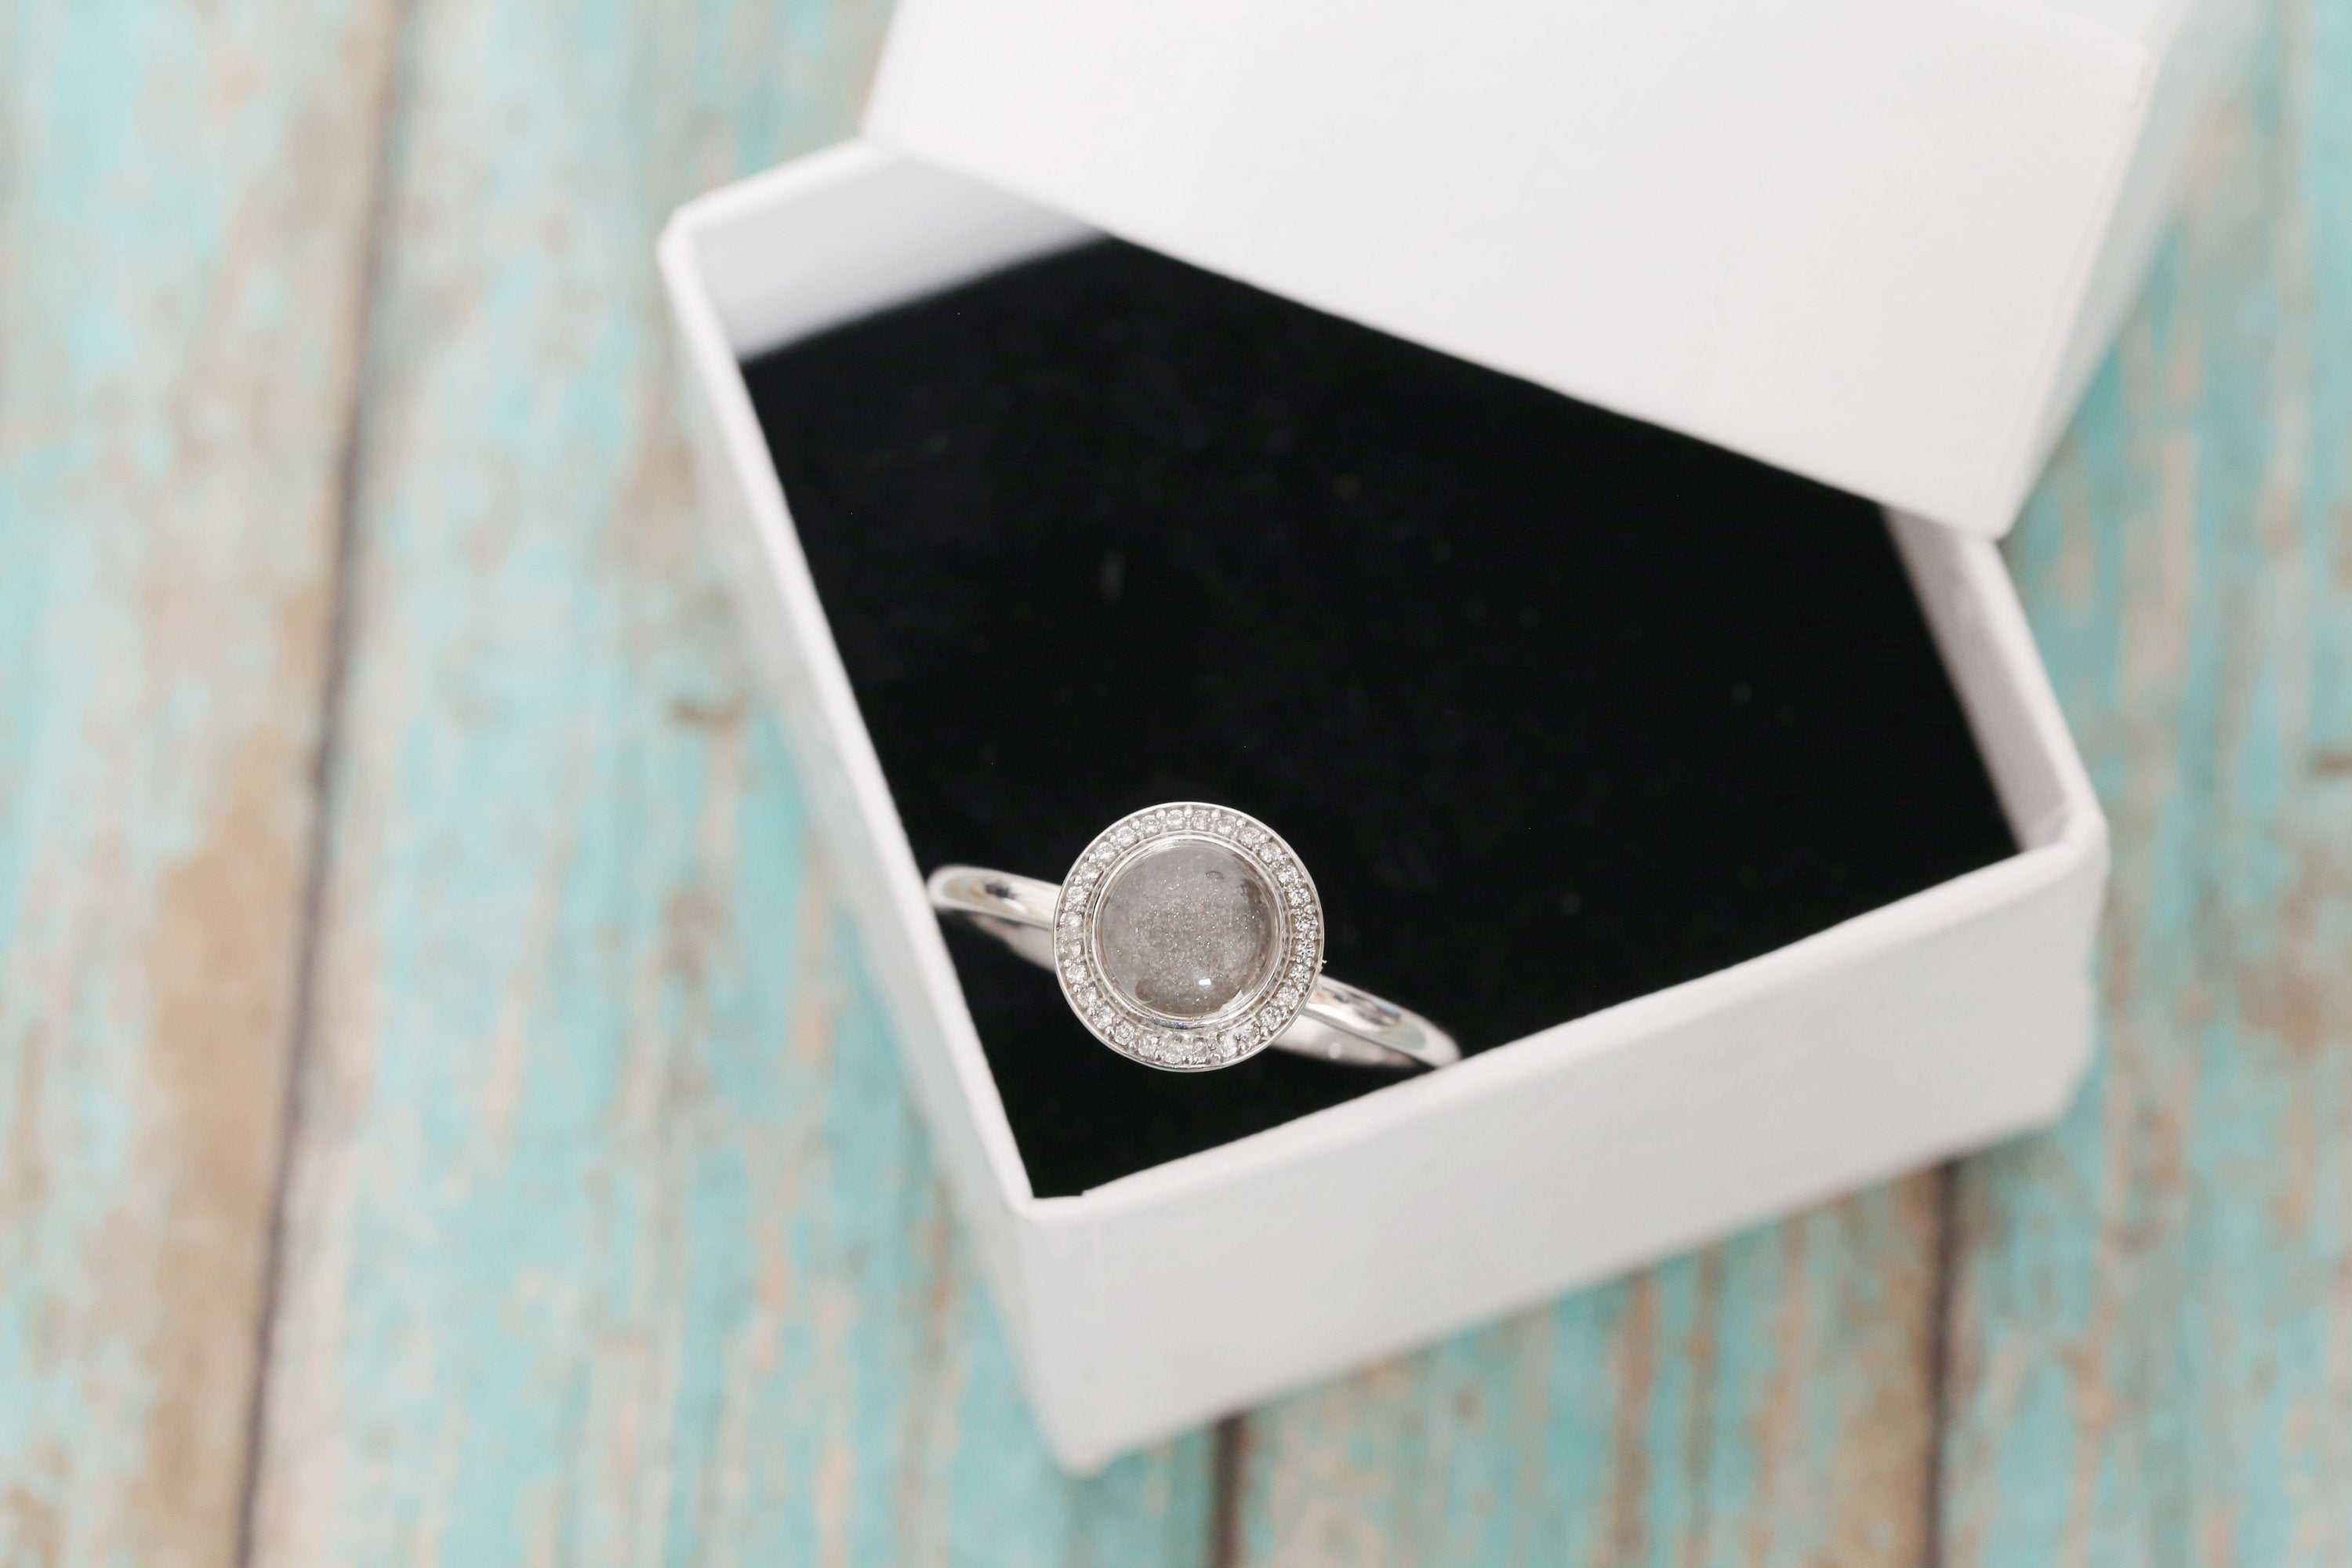 Platinum and Diamond Cremation Ring - Halo Ring - Cremation Jewelry - Ash Ring - Ash Jewelry - Urn Ring - Urn - Pet Loss - Cremation Ring